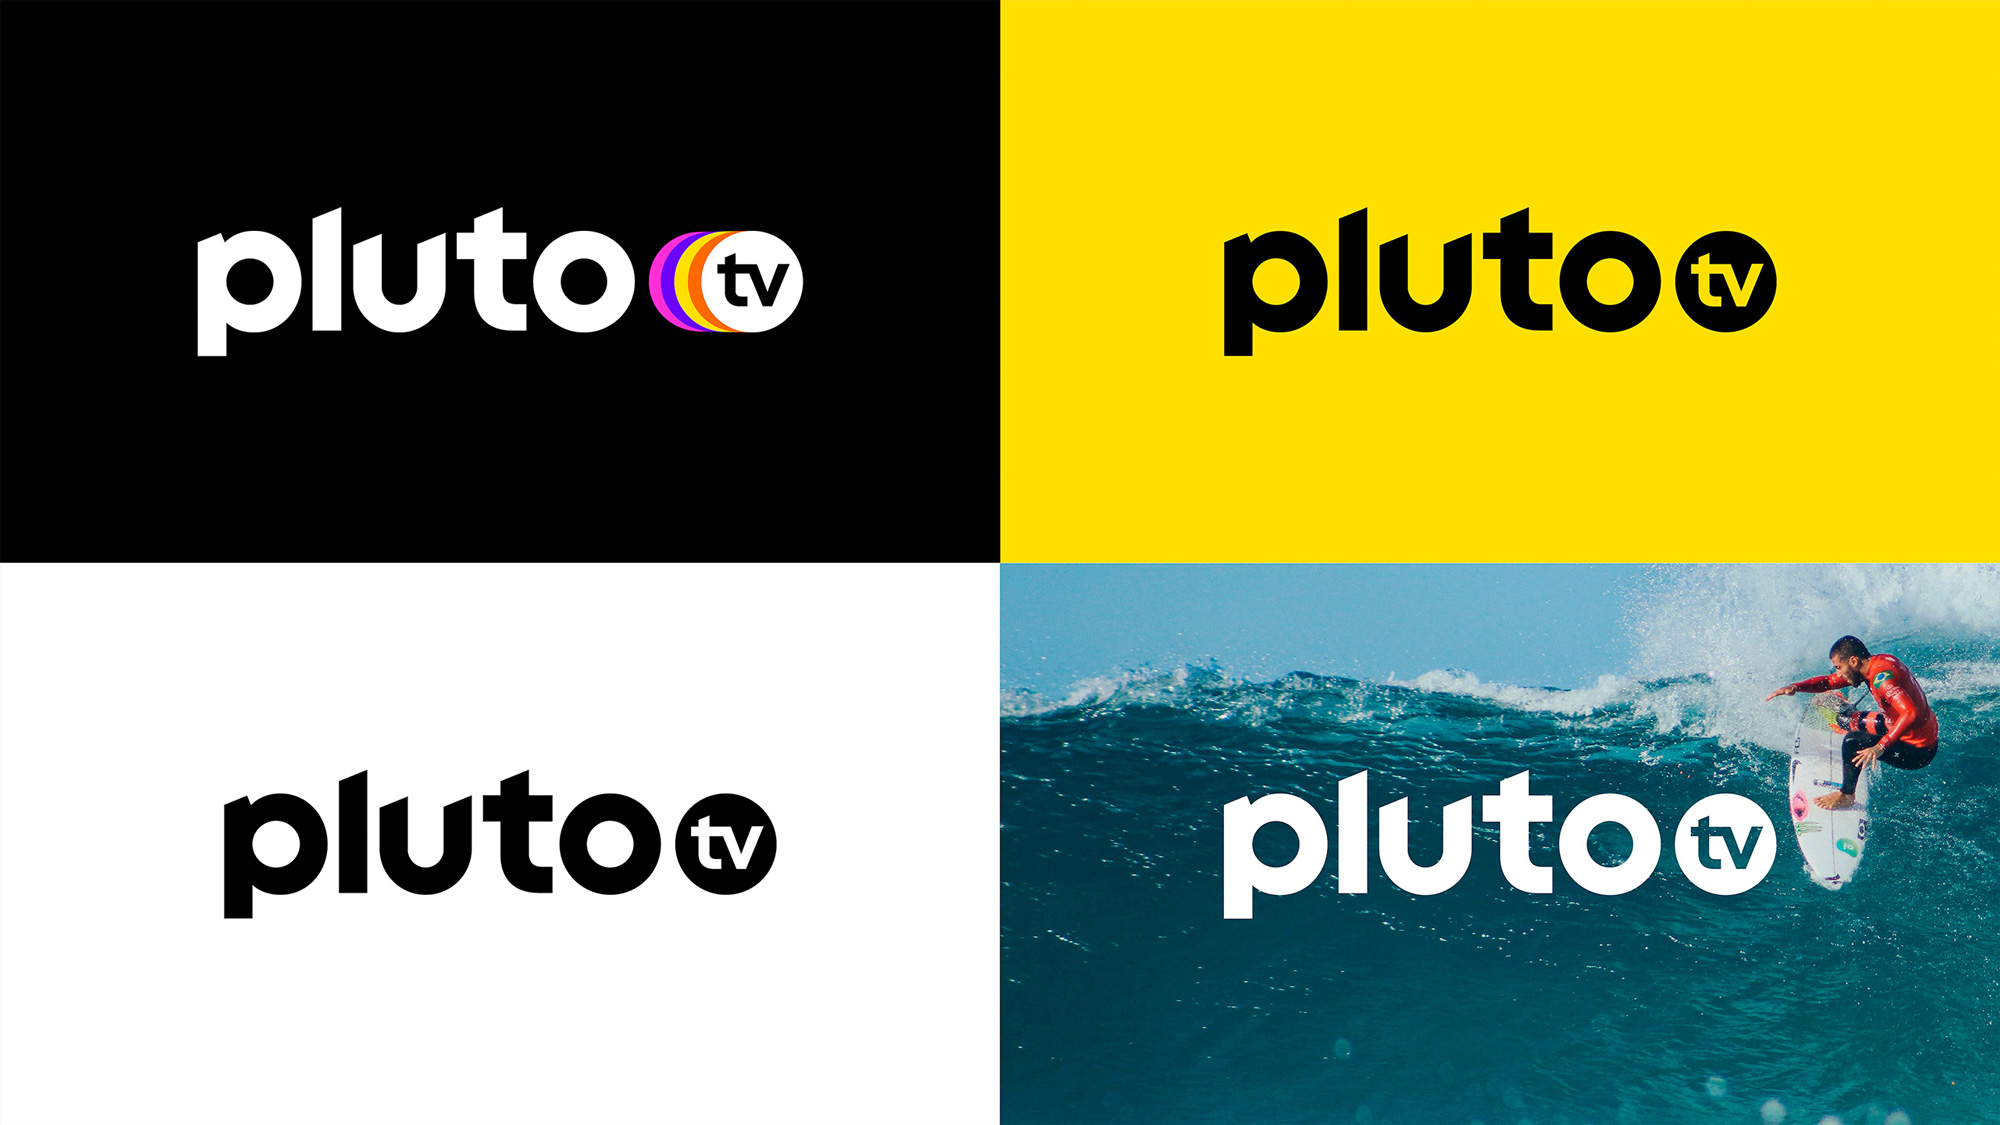 New Logo, Identity, and On-air Look for Pluto TV by DixonBaxi